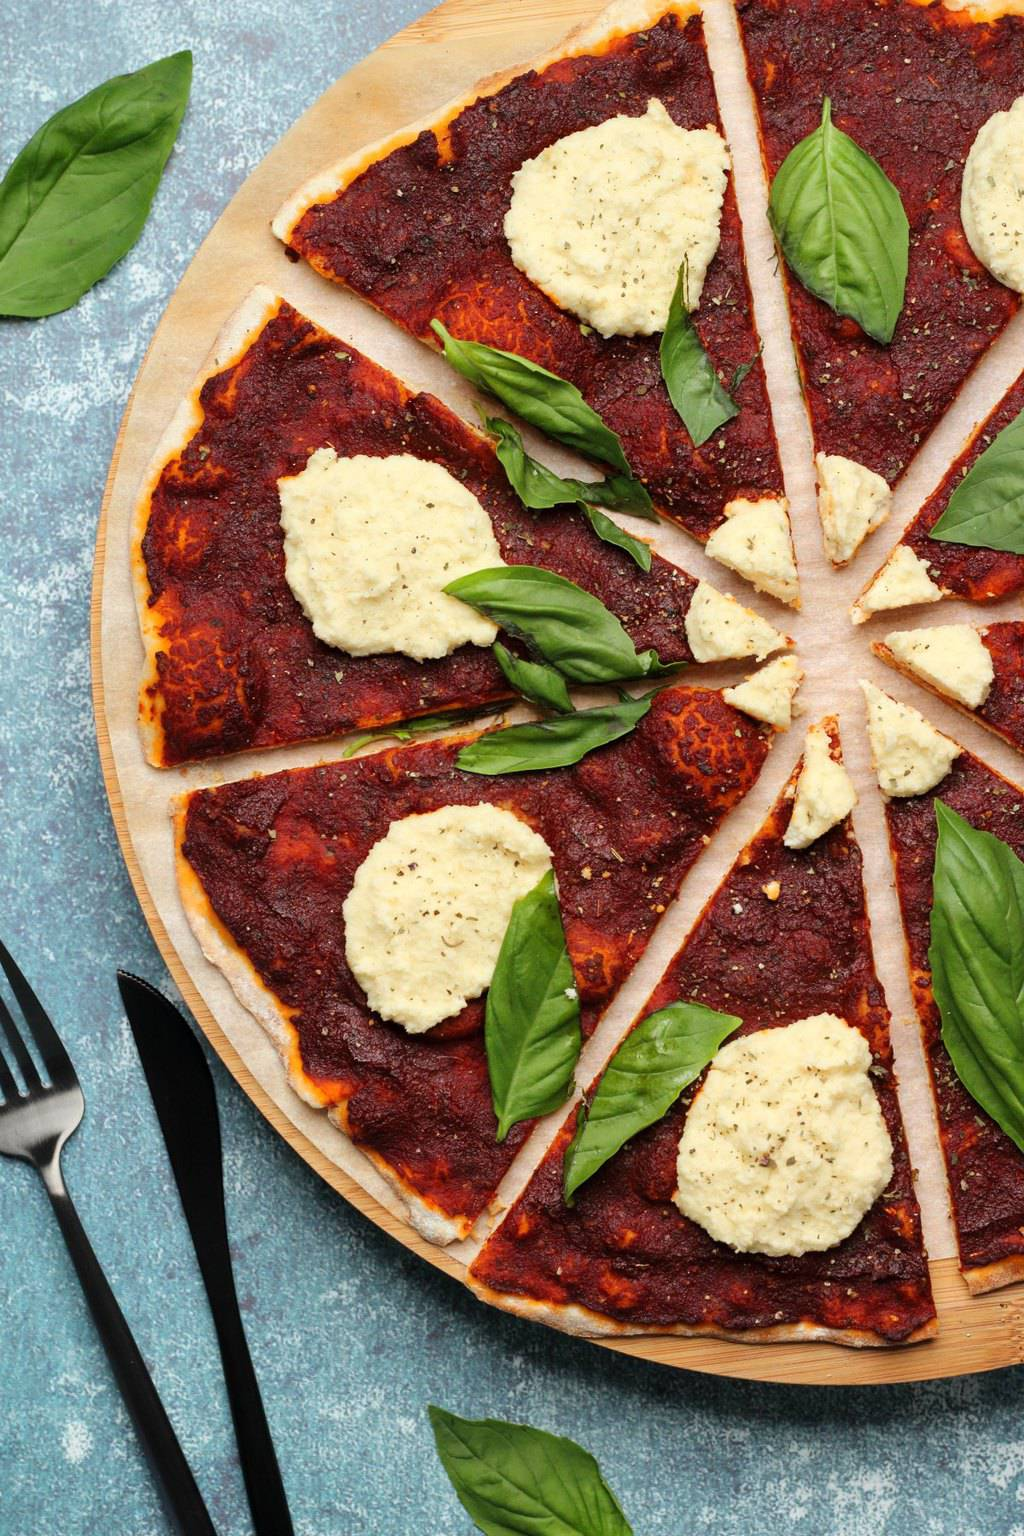 Vegan pizza topped with vegan ricotta and fresh basil leaves.